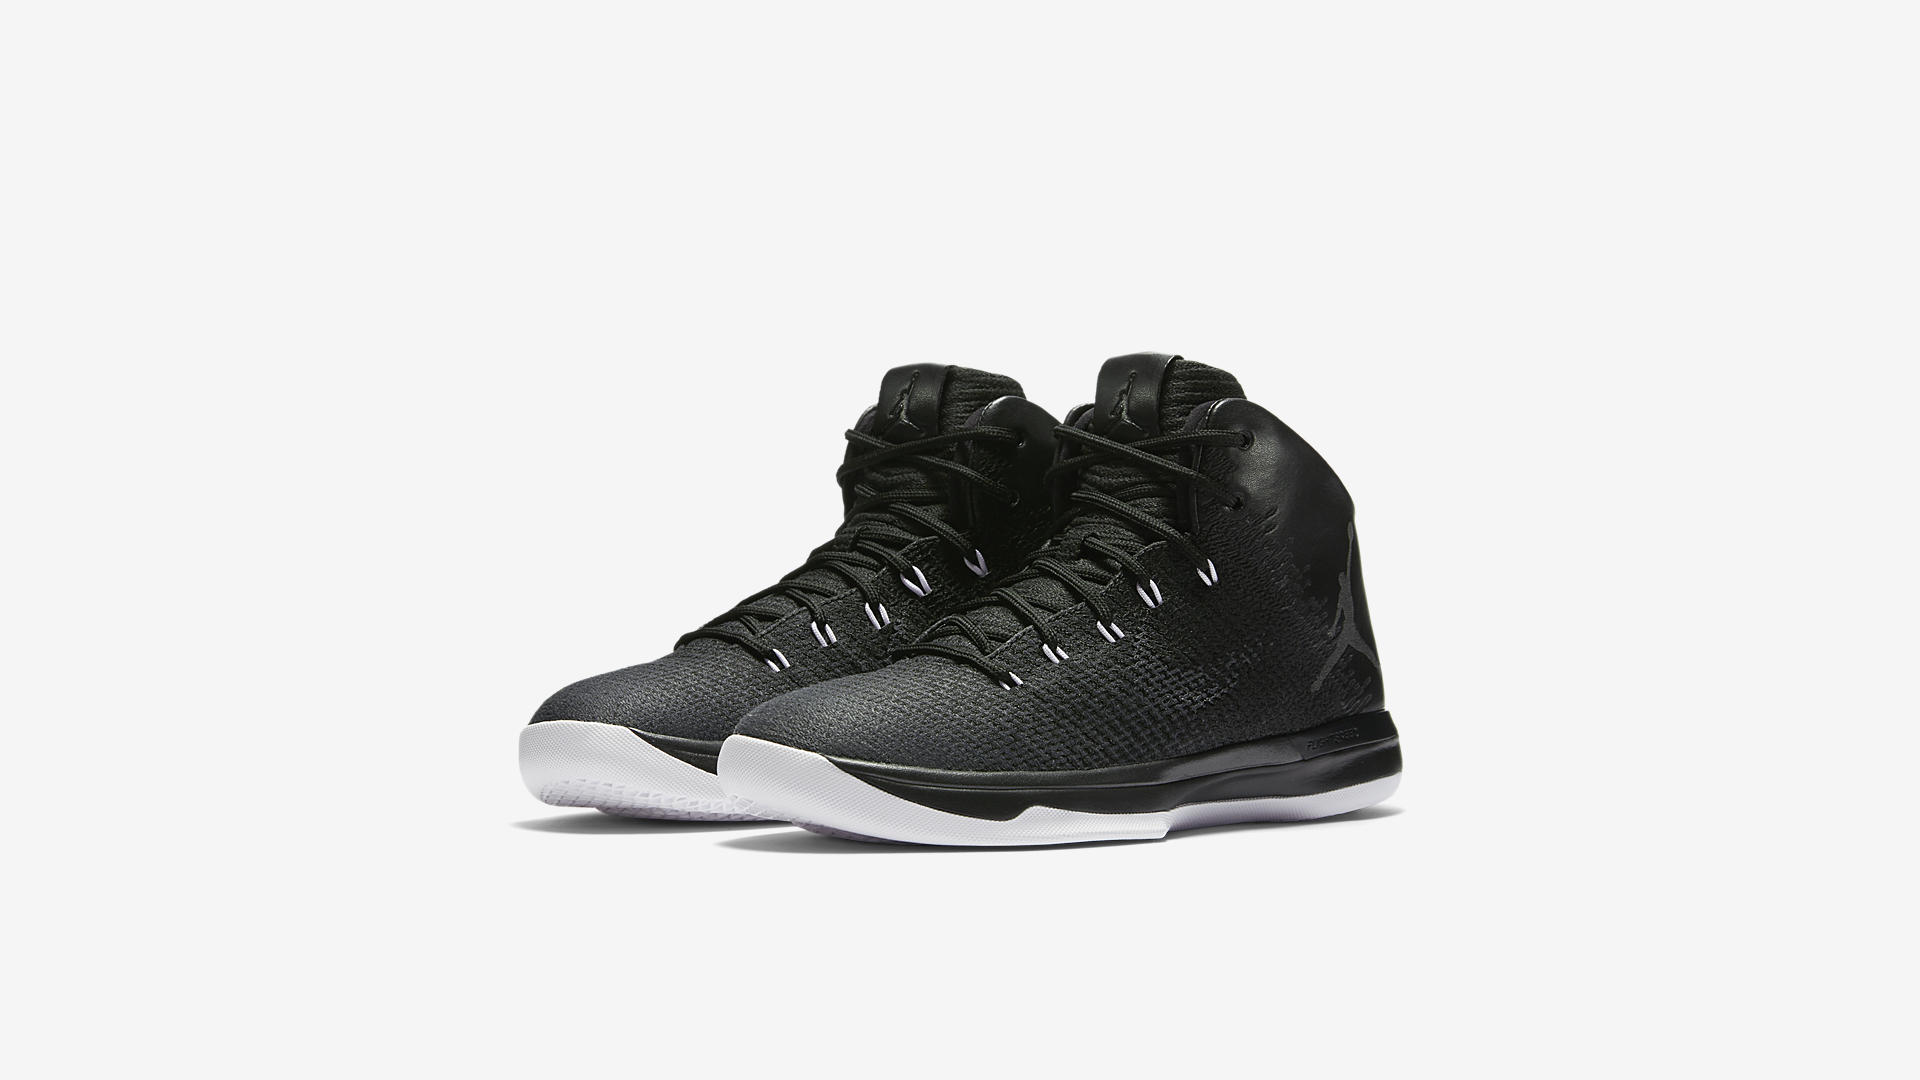 Air Jordan 31 Black Cat 845037 010 1